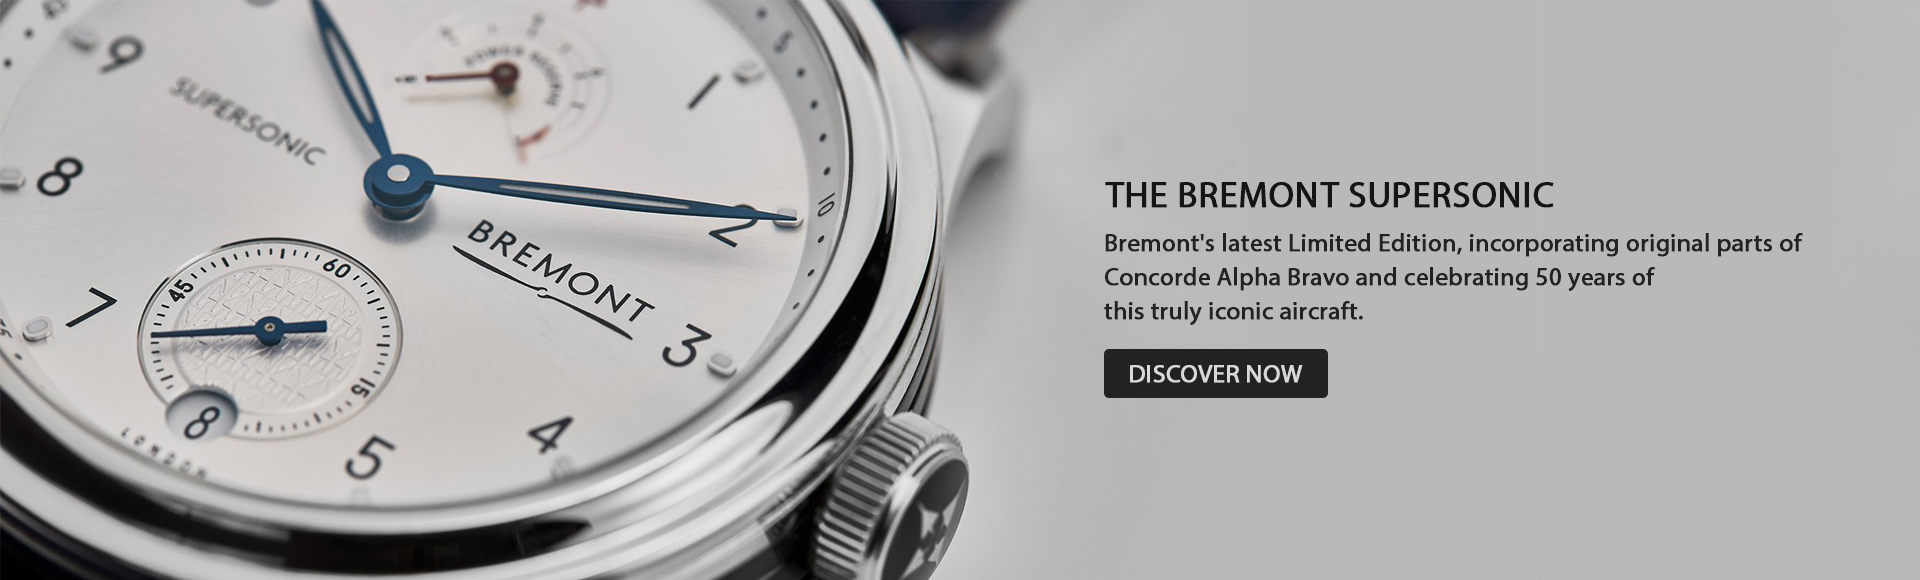 Bremont Supersonic